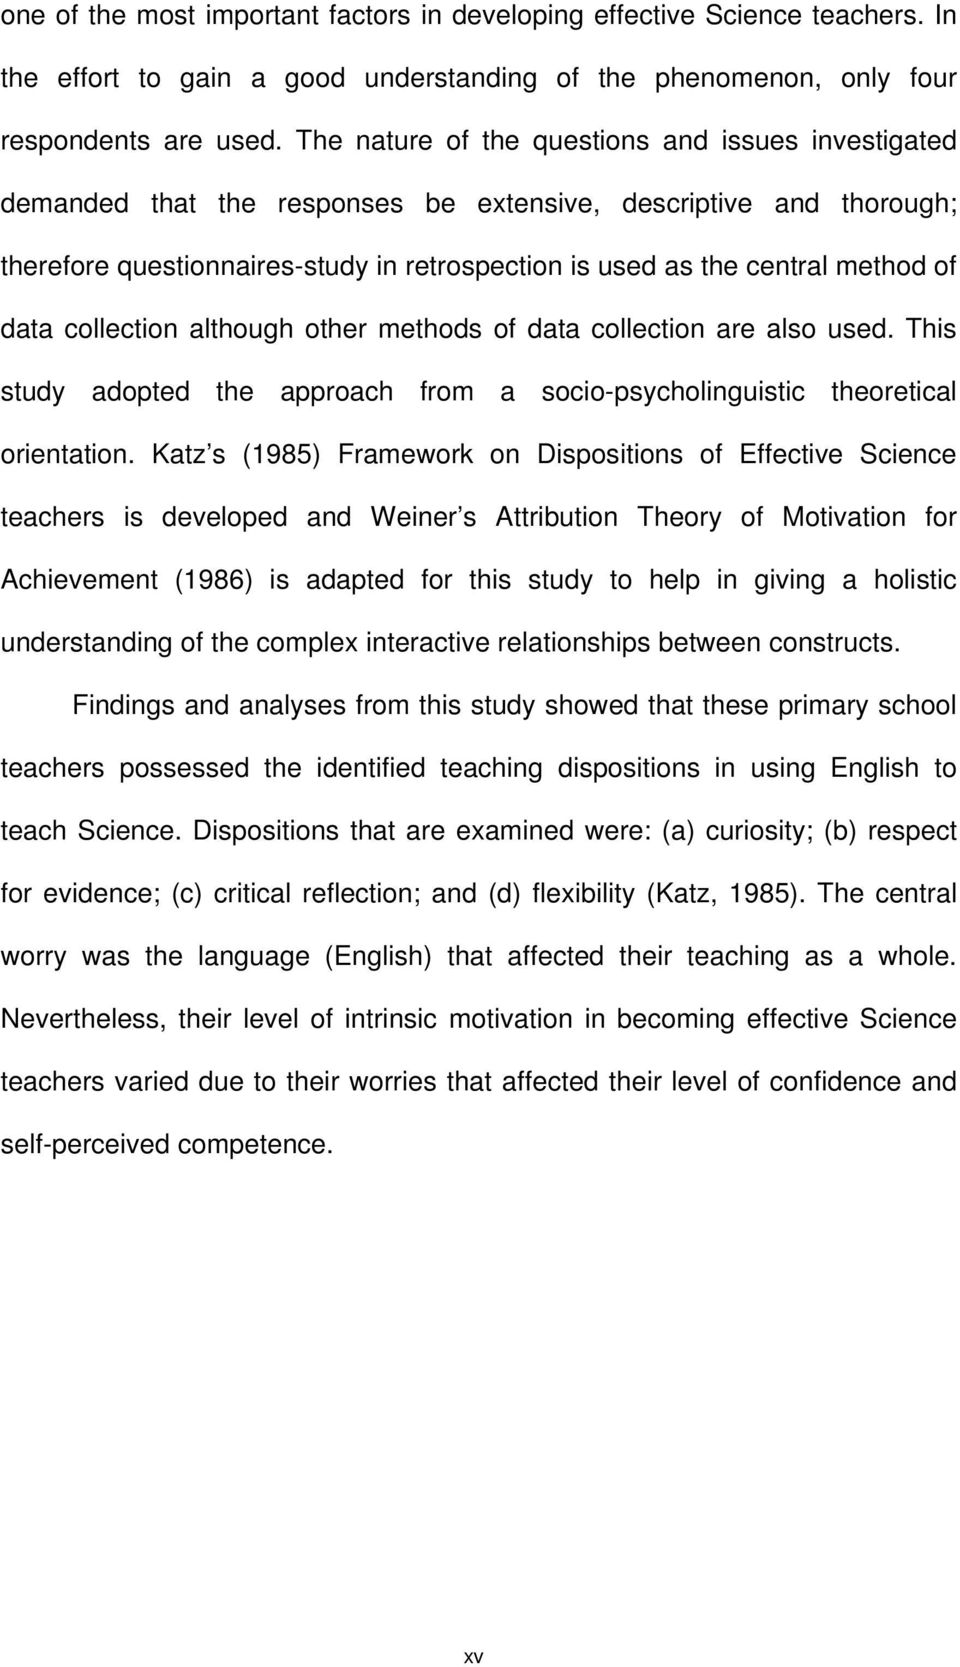 of data collection although other methods of data collection are also used. This study adopted the approach from a socio-psycholinguistic theoretical orientation.